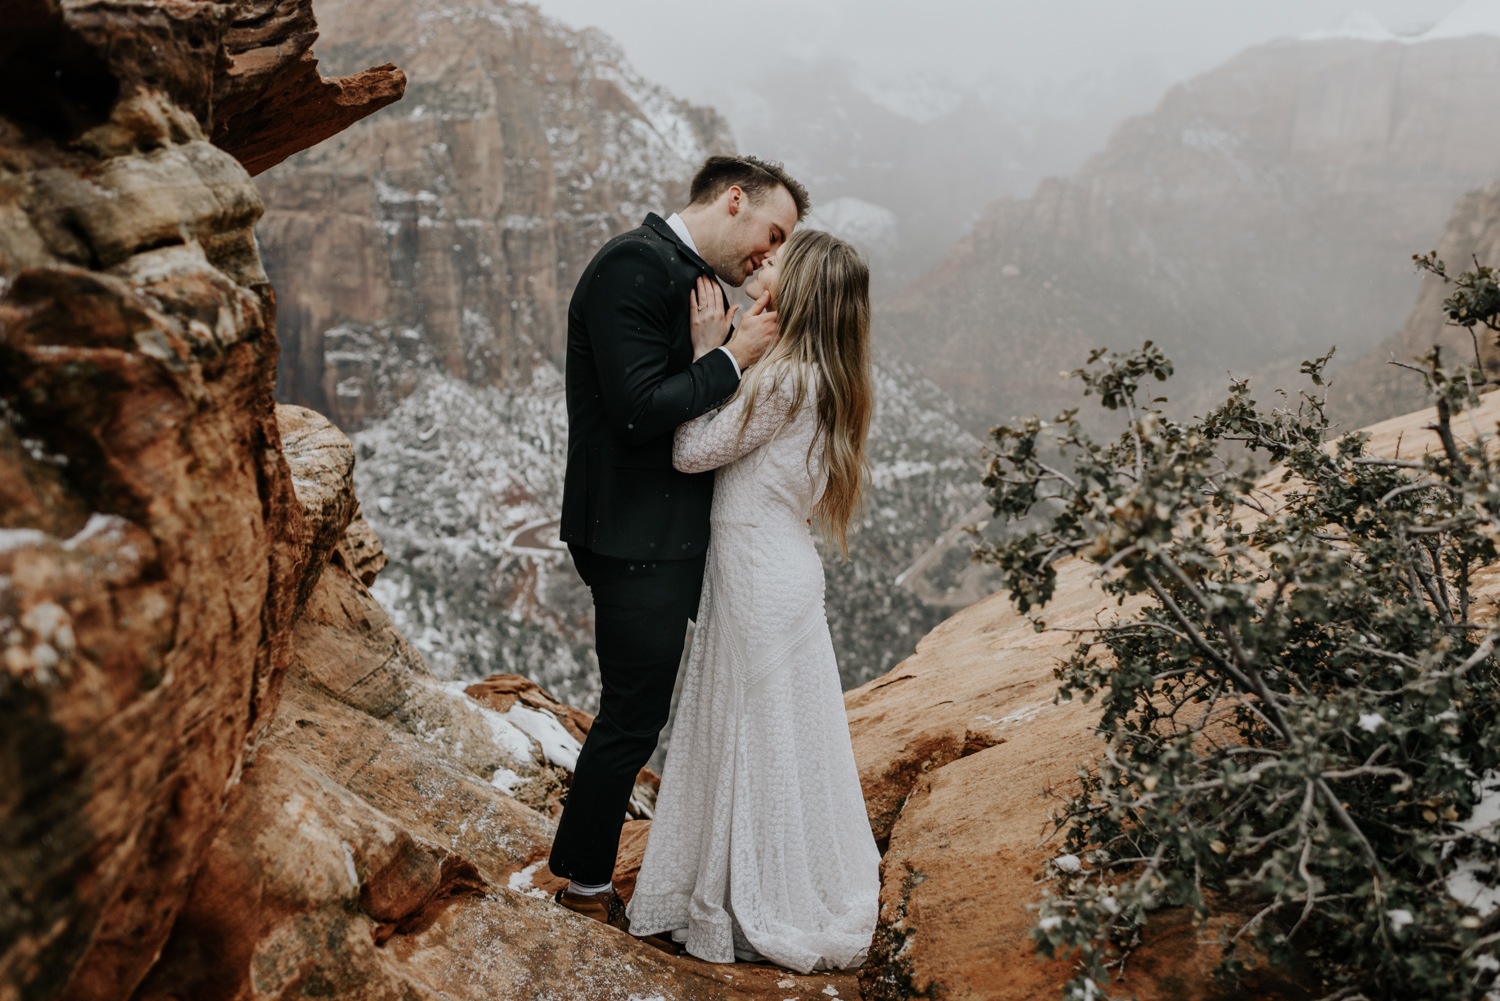 Outdoor lovers at Zion National Park